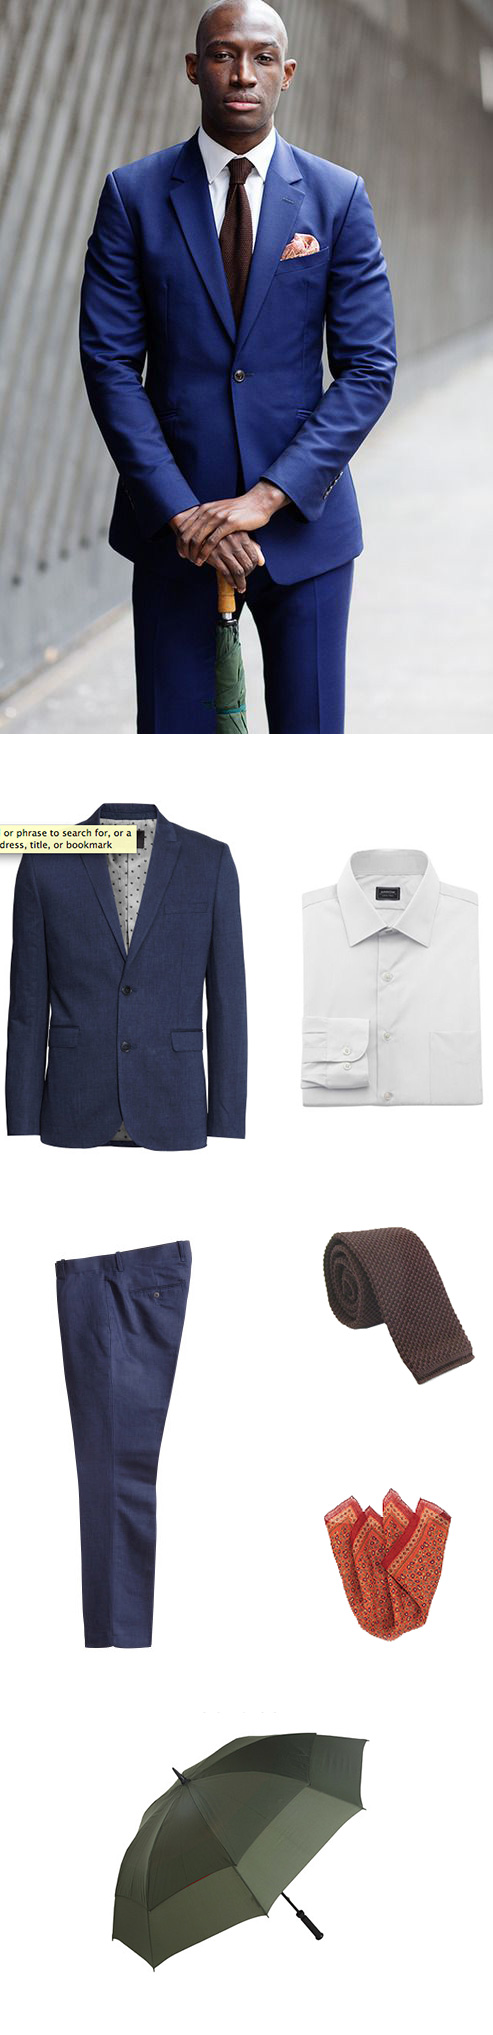 Designer Business Wear Look for Under $300